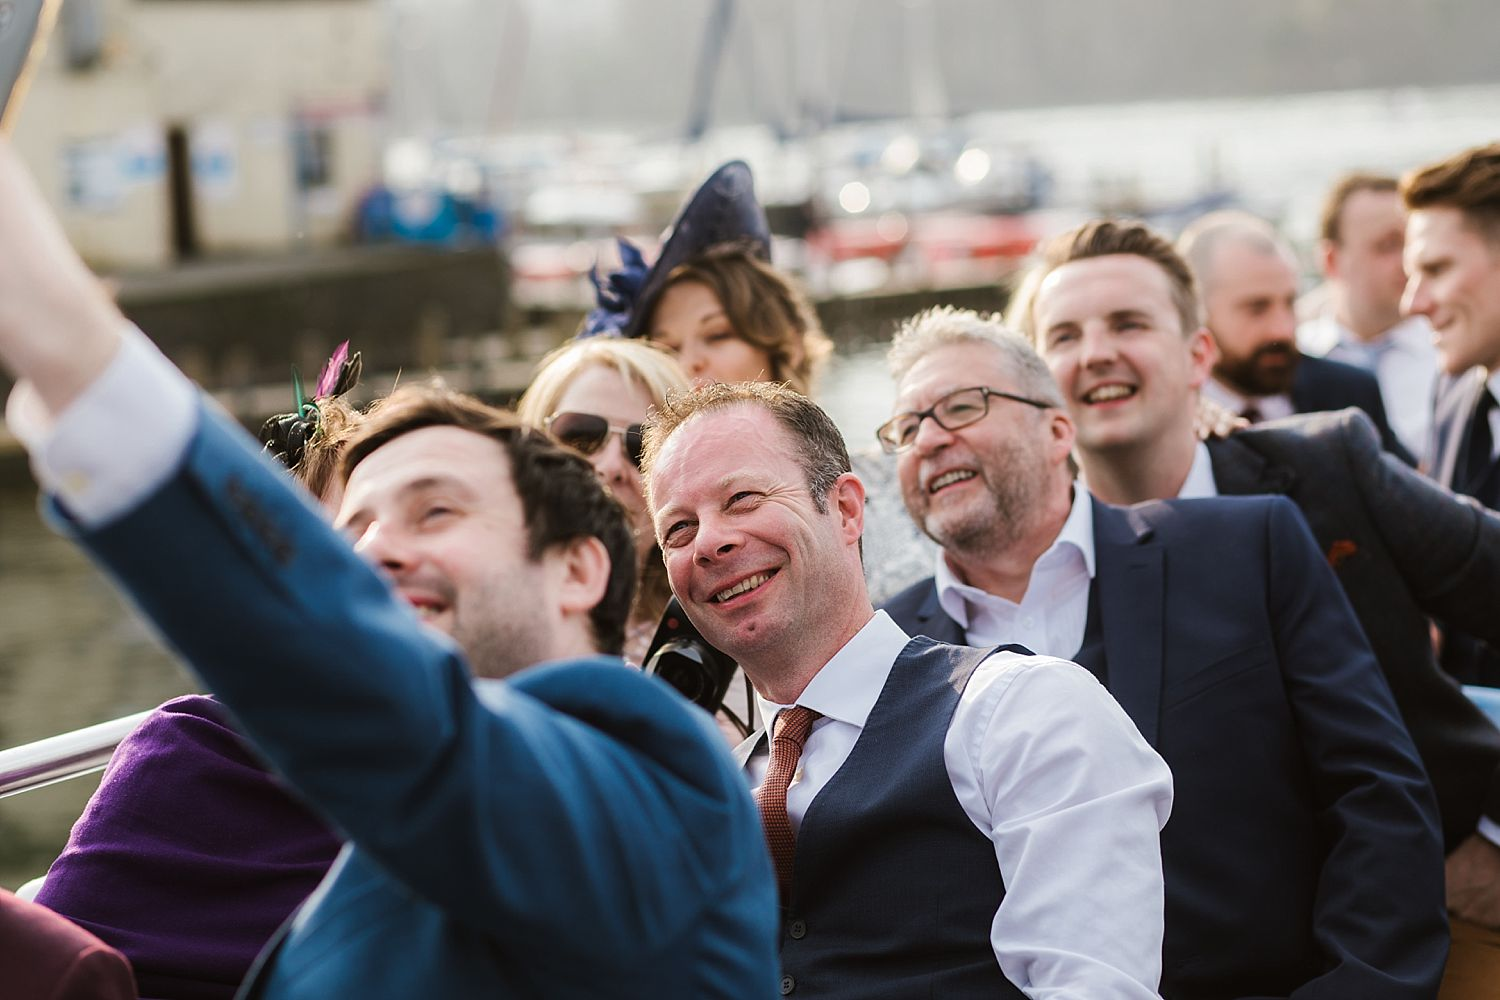 Wedding guests take 'selfie' on board Windermere cruiser at reception for Belsfield Hotel wedding